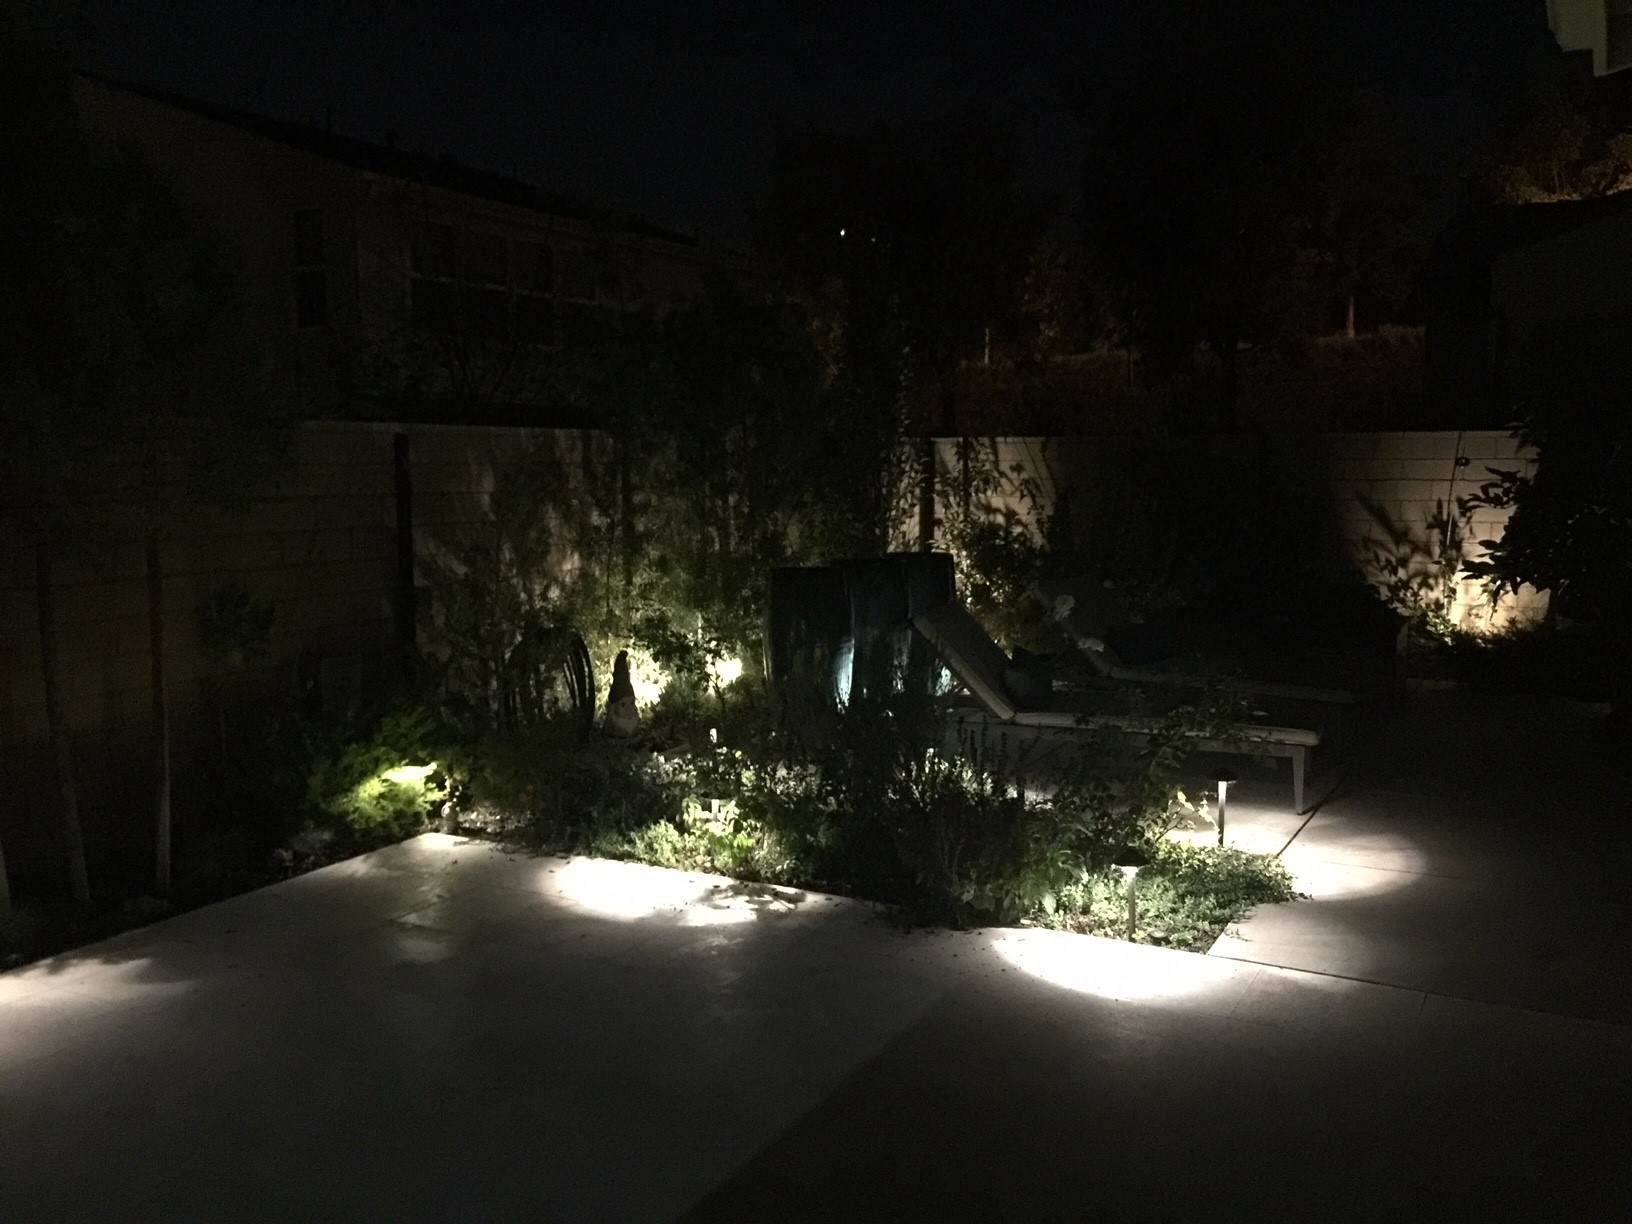 Ewing landscape lighting lighting ideas 1 4 or 2 drip irragation for fruit trees on a new zone ewing landscape lighting cozy aloadofball Image collections